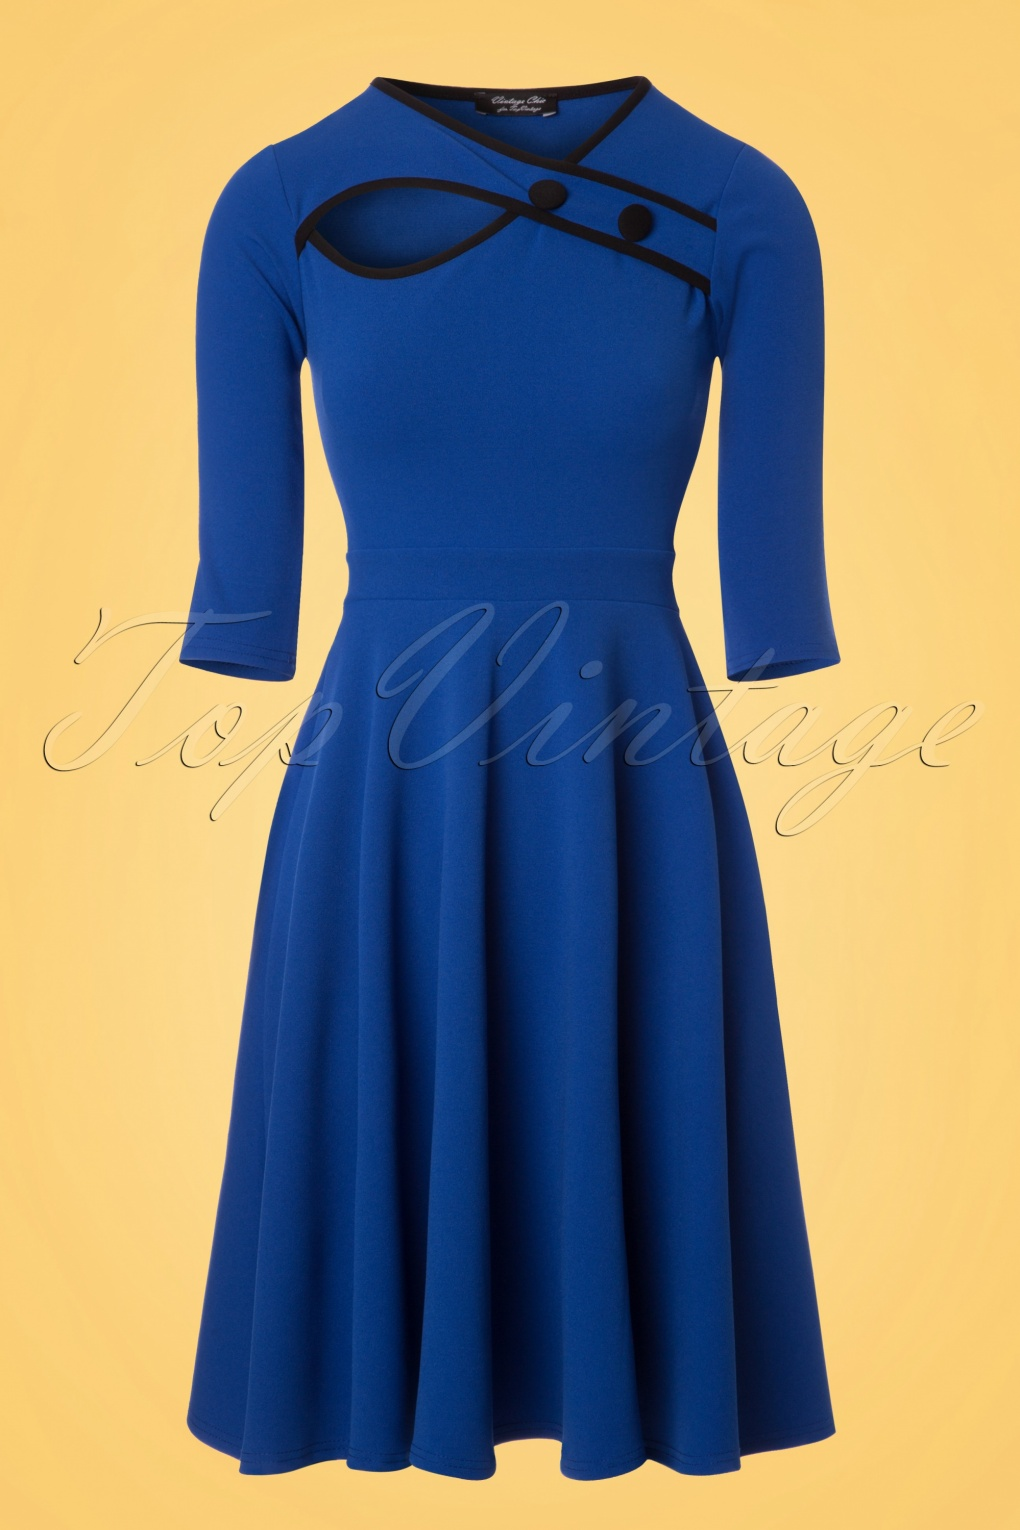 1950s Prom Dresses & Party Dresses 50s Rita Swing Dress in Royal Blue £51.84 AT vintagedancer.com